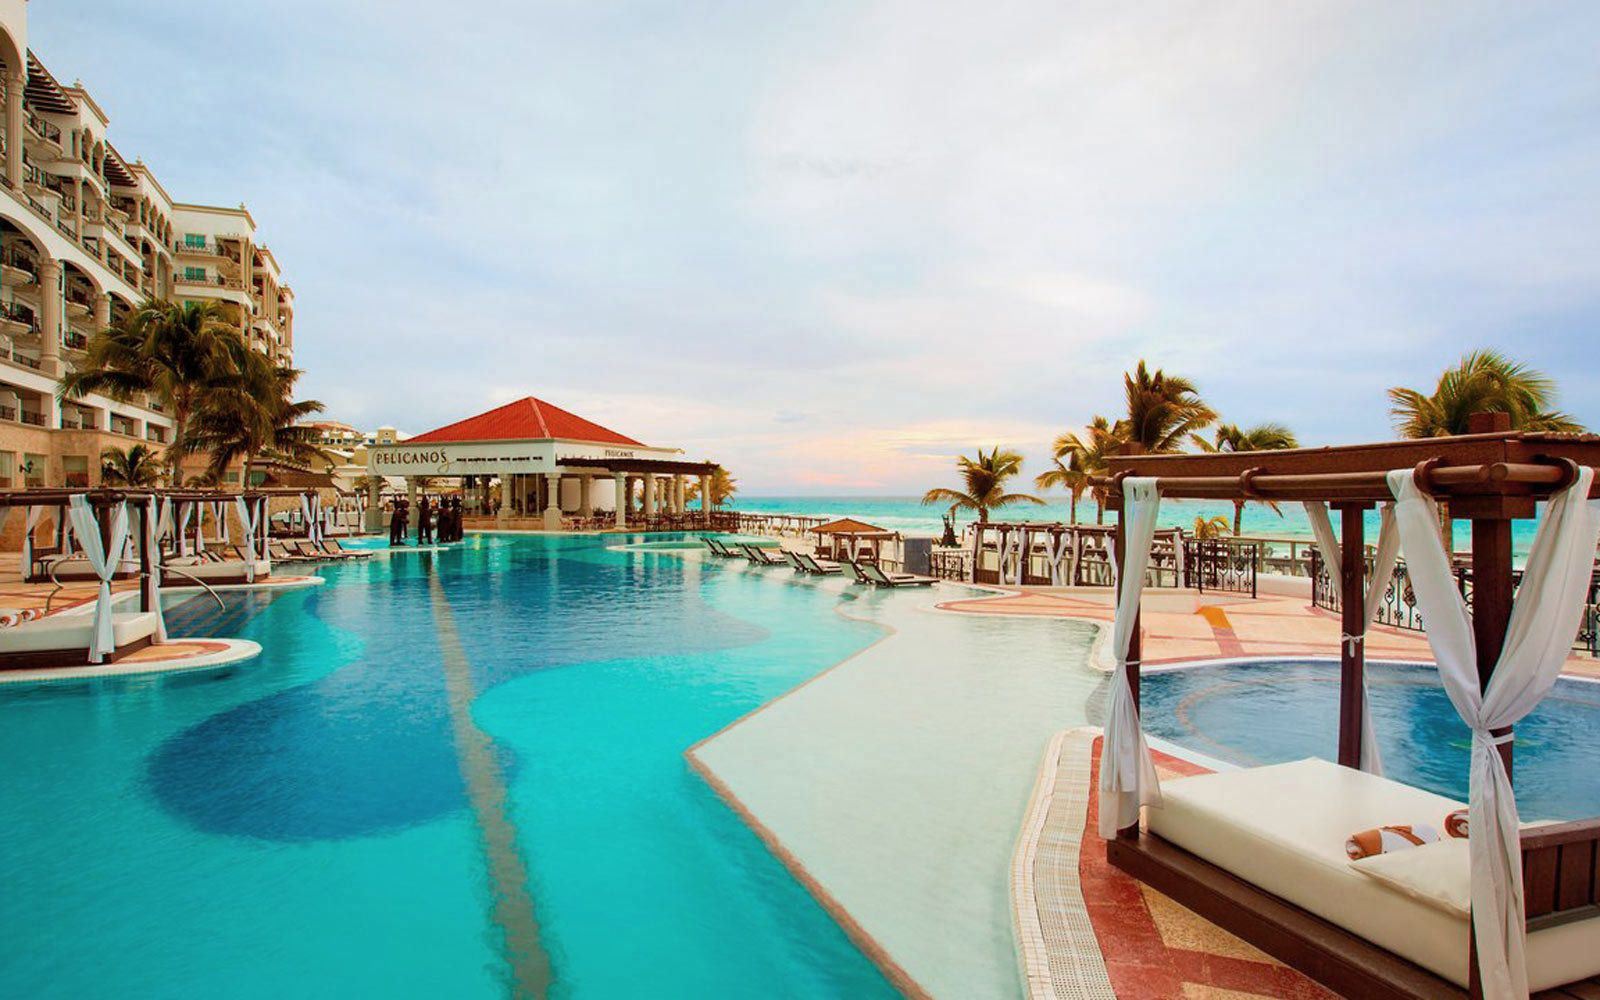 13 Best All Inclusive Resorts In Cancun For Families Couples And Solo Travelers Cancun All Inclusive Best All Inclusive Resorts Cancun Hotels